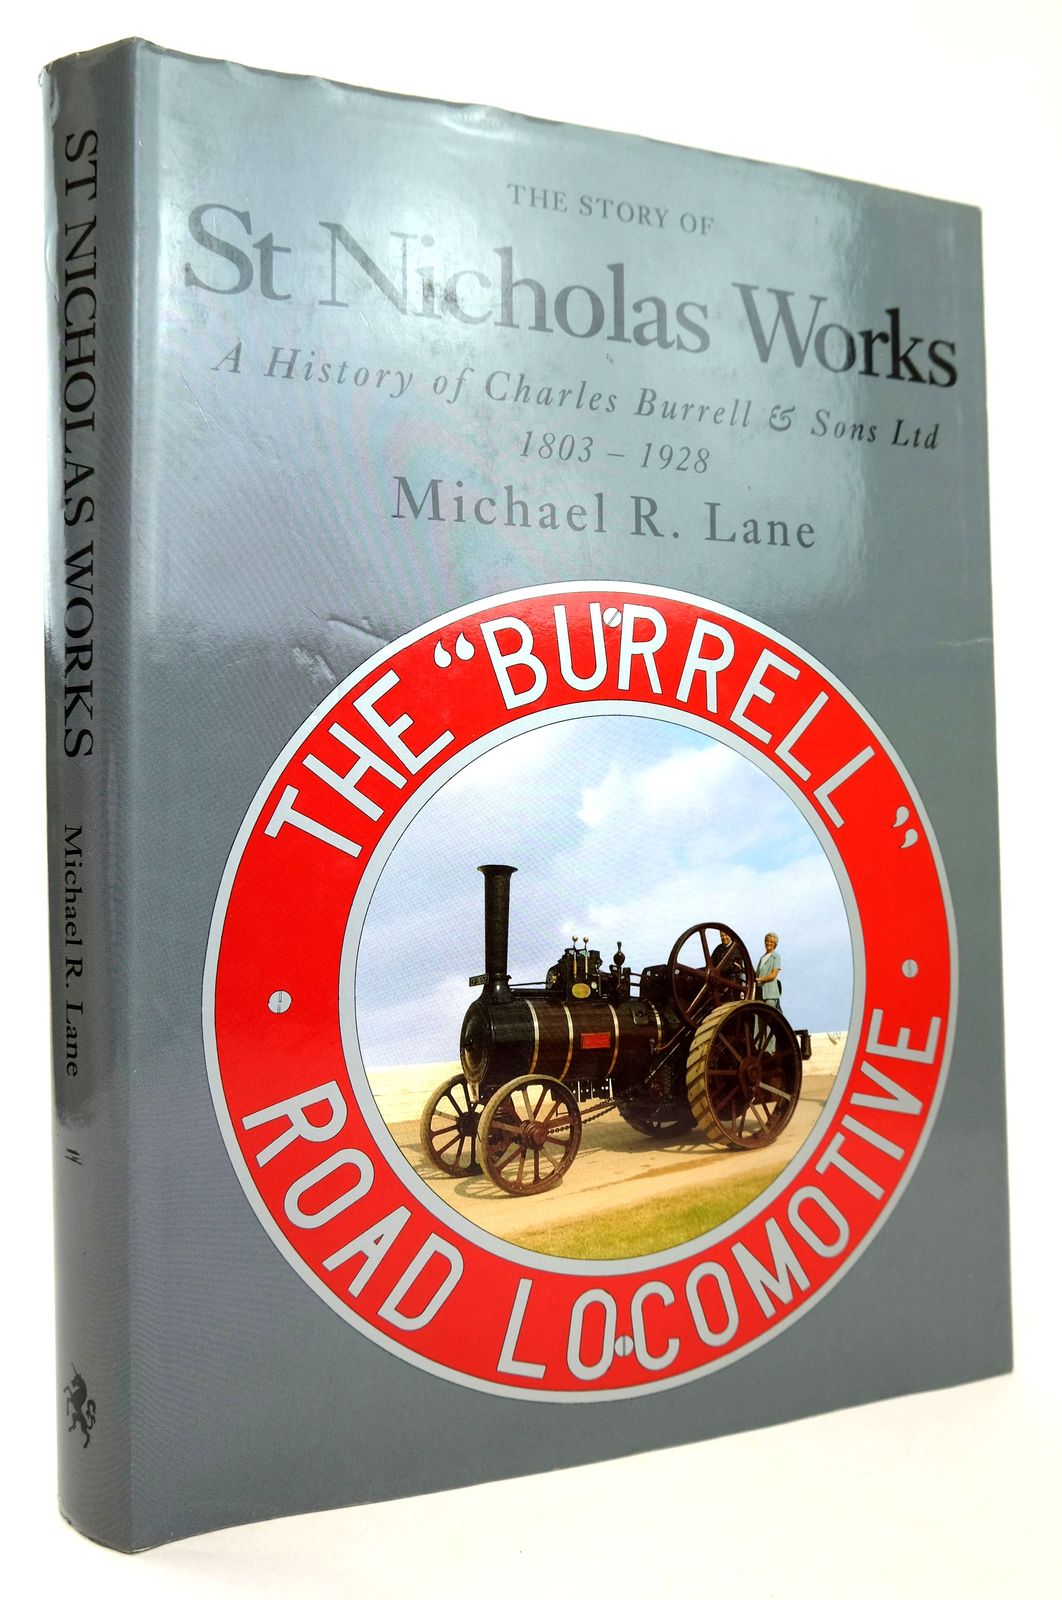 Photo of THE STORY OF ST NICHOLAS WORKS: A HISTORY OF CHARLES BURRELL & SONS LTD. 1803-1928.- Stock Number: 1818757